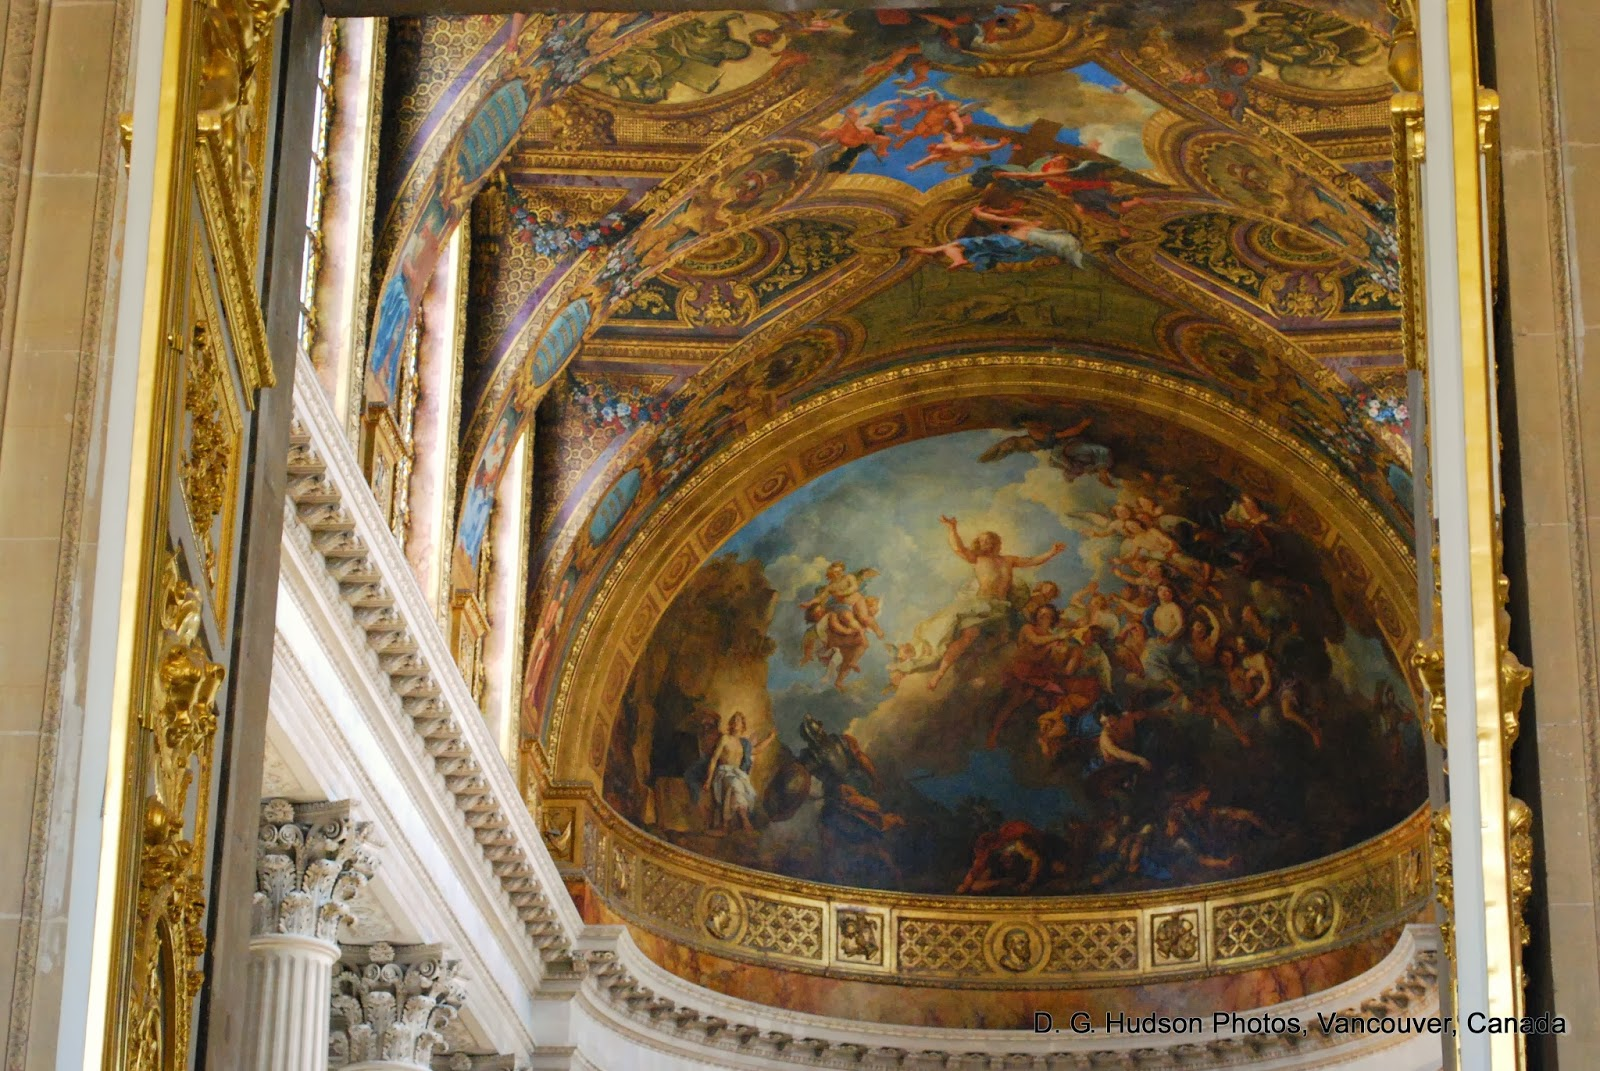 DG Hudson 21st Century Journal The Louvre and Versailles